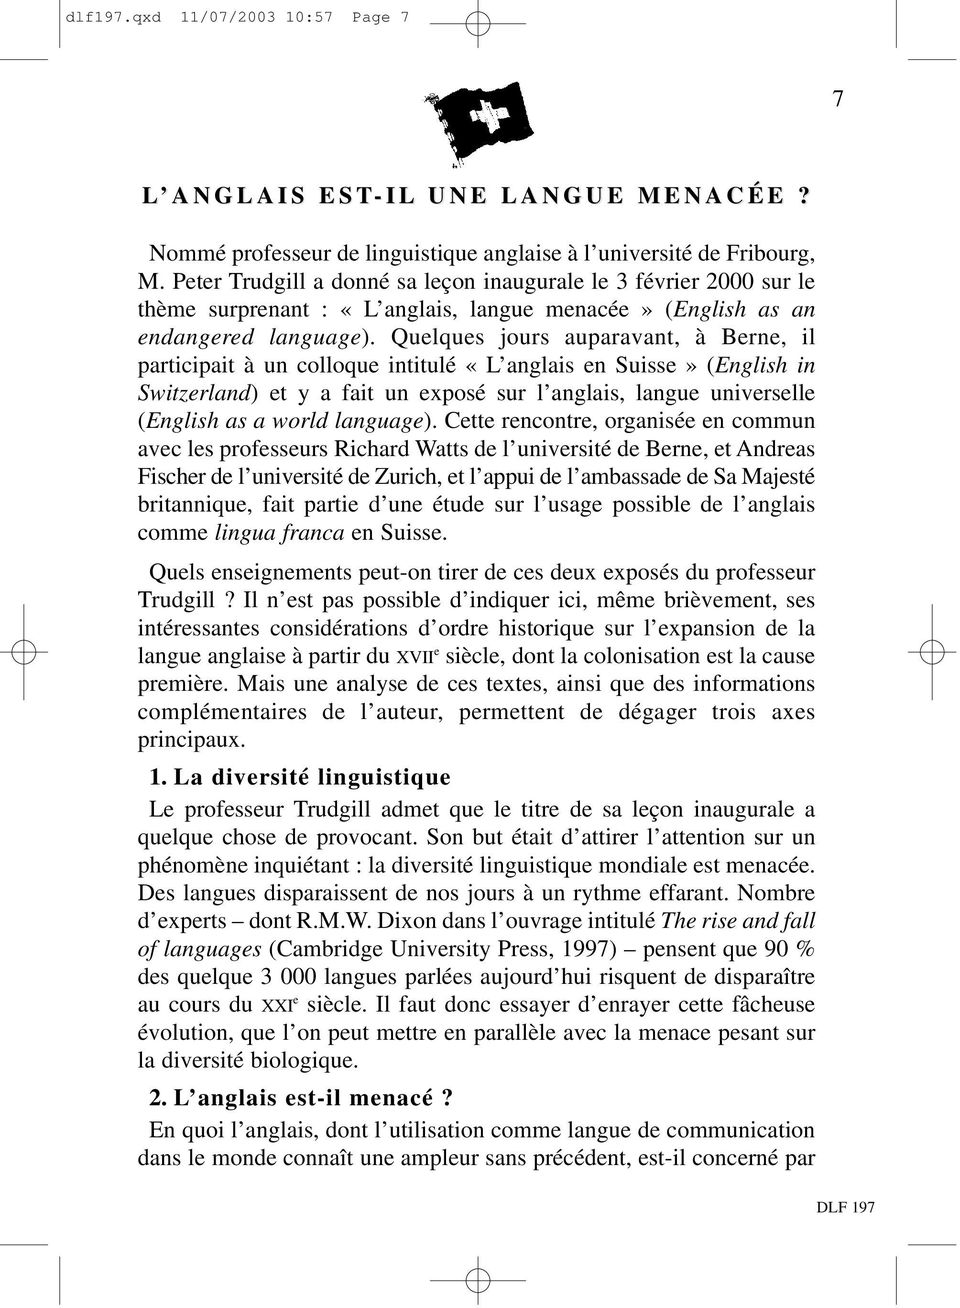 Quelques jours auparavant, à Berne, il participait à un colloque intitulé «L anglais en Suisse» (English in Switzerland) et y a fait un exposé sur l anglais, langue universelle (English as a world